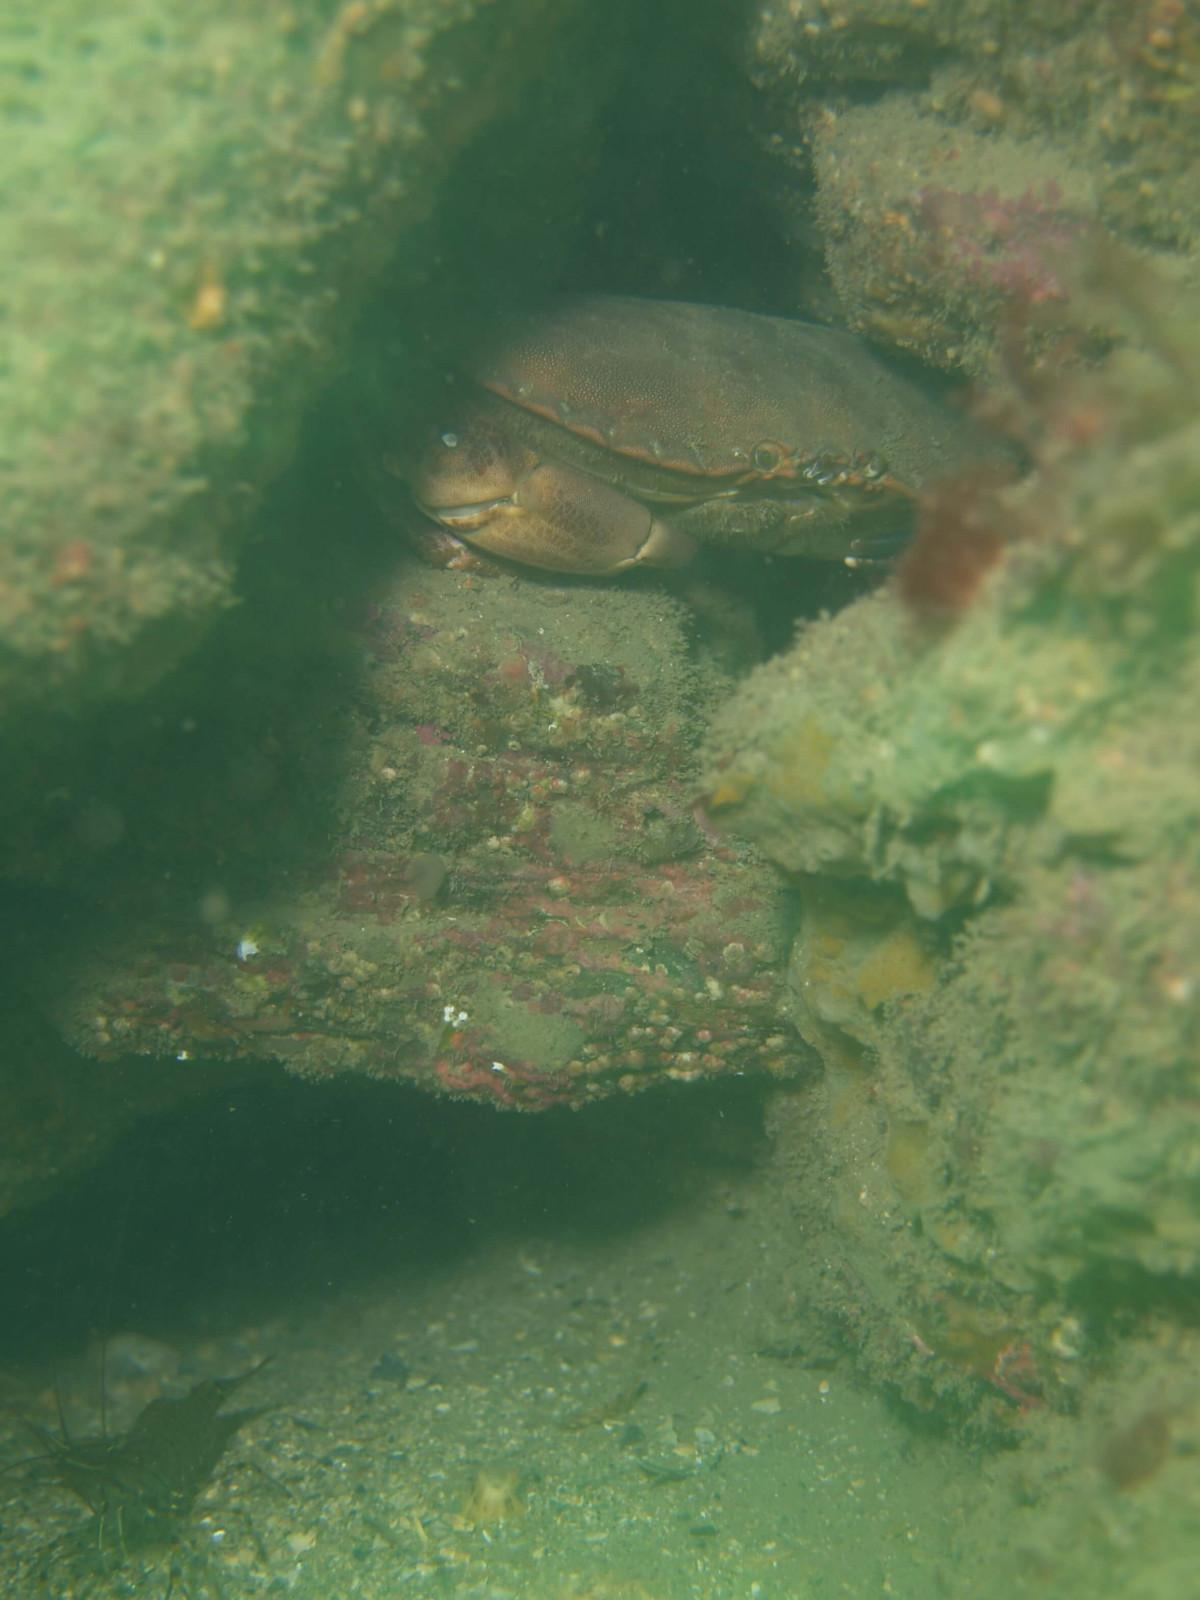 Images from Dive at Porth Dafarch, west coast of Anglesey in North Wales (4)